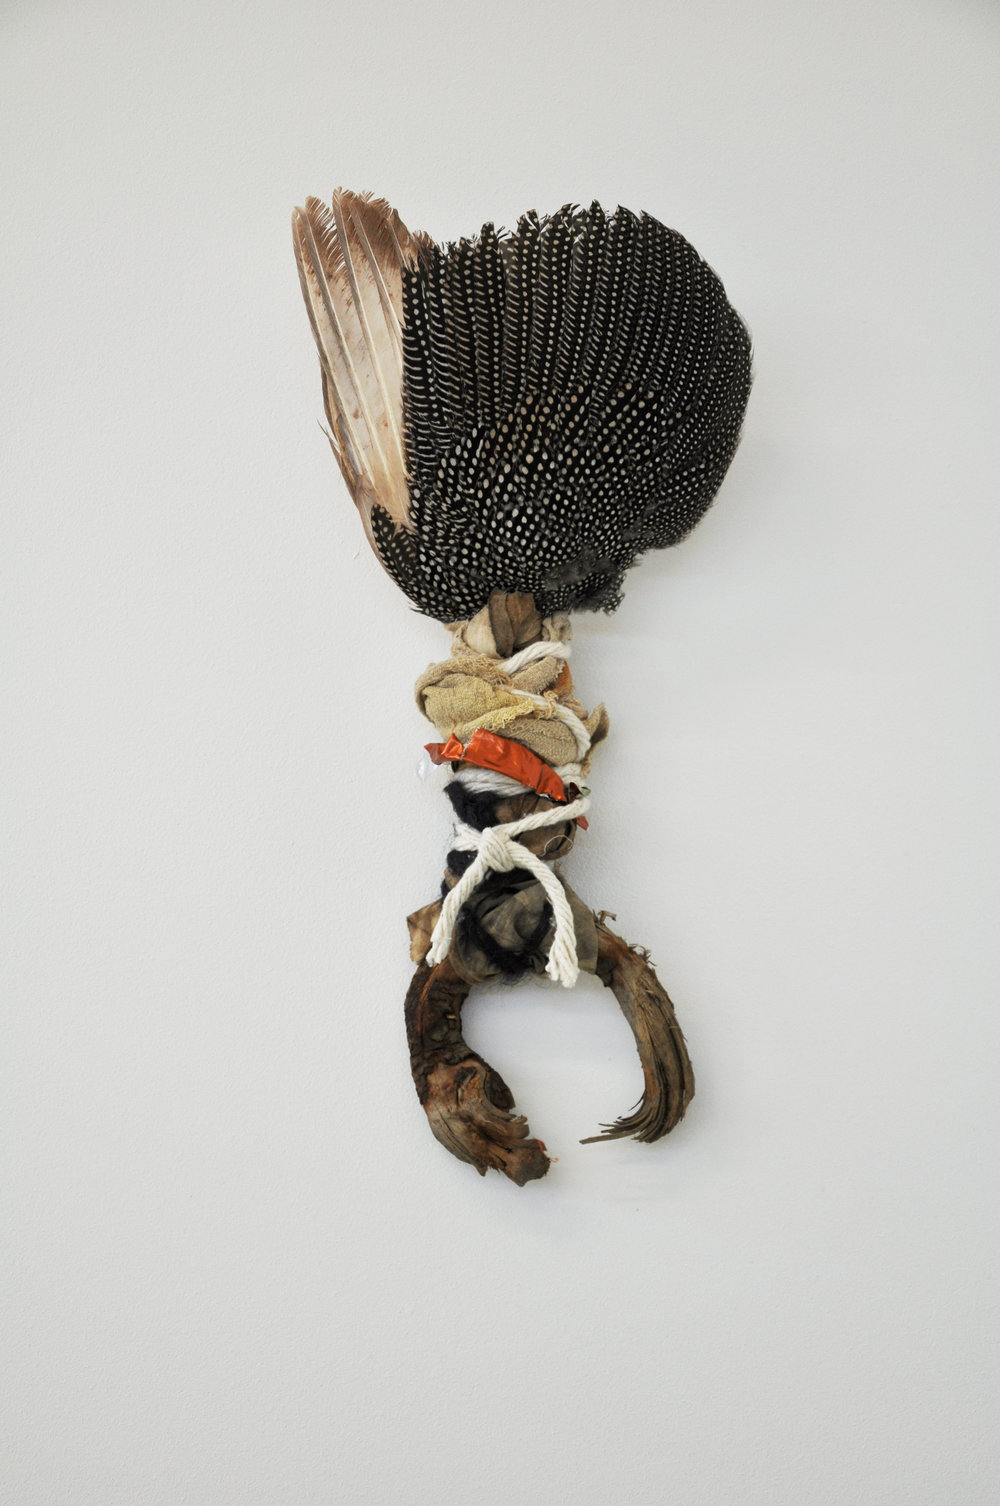 Praise Be,   2018  guinea fowl wing, wood, cloth, string, foil h55cm